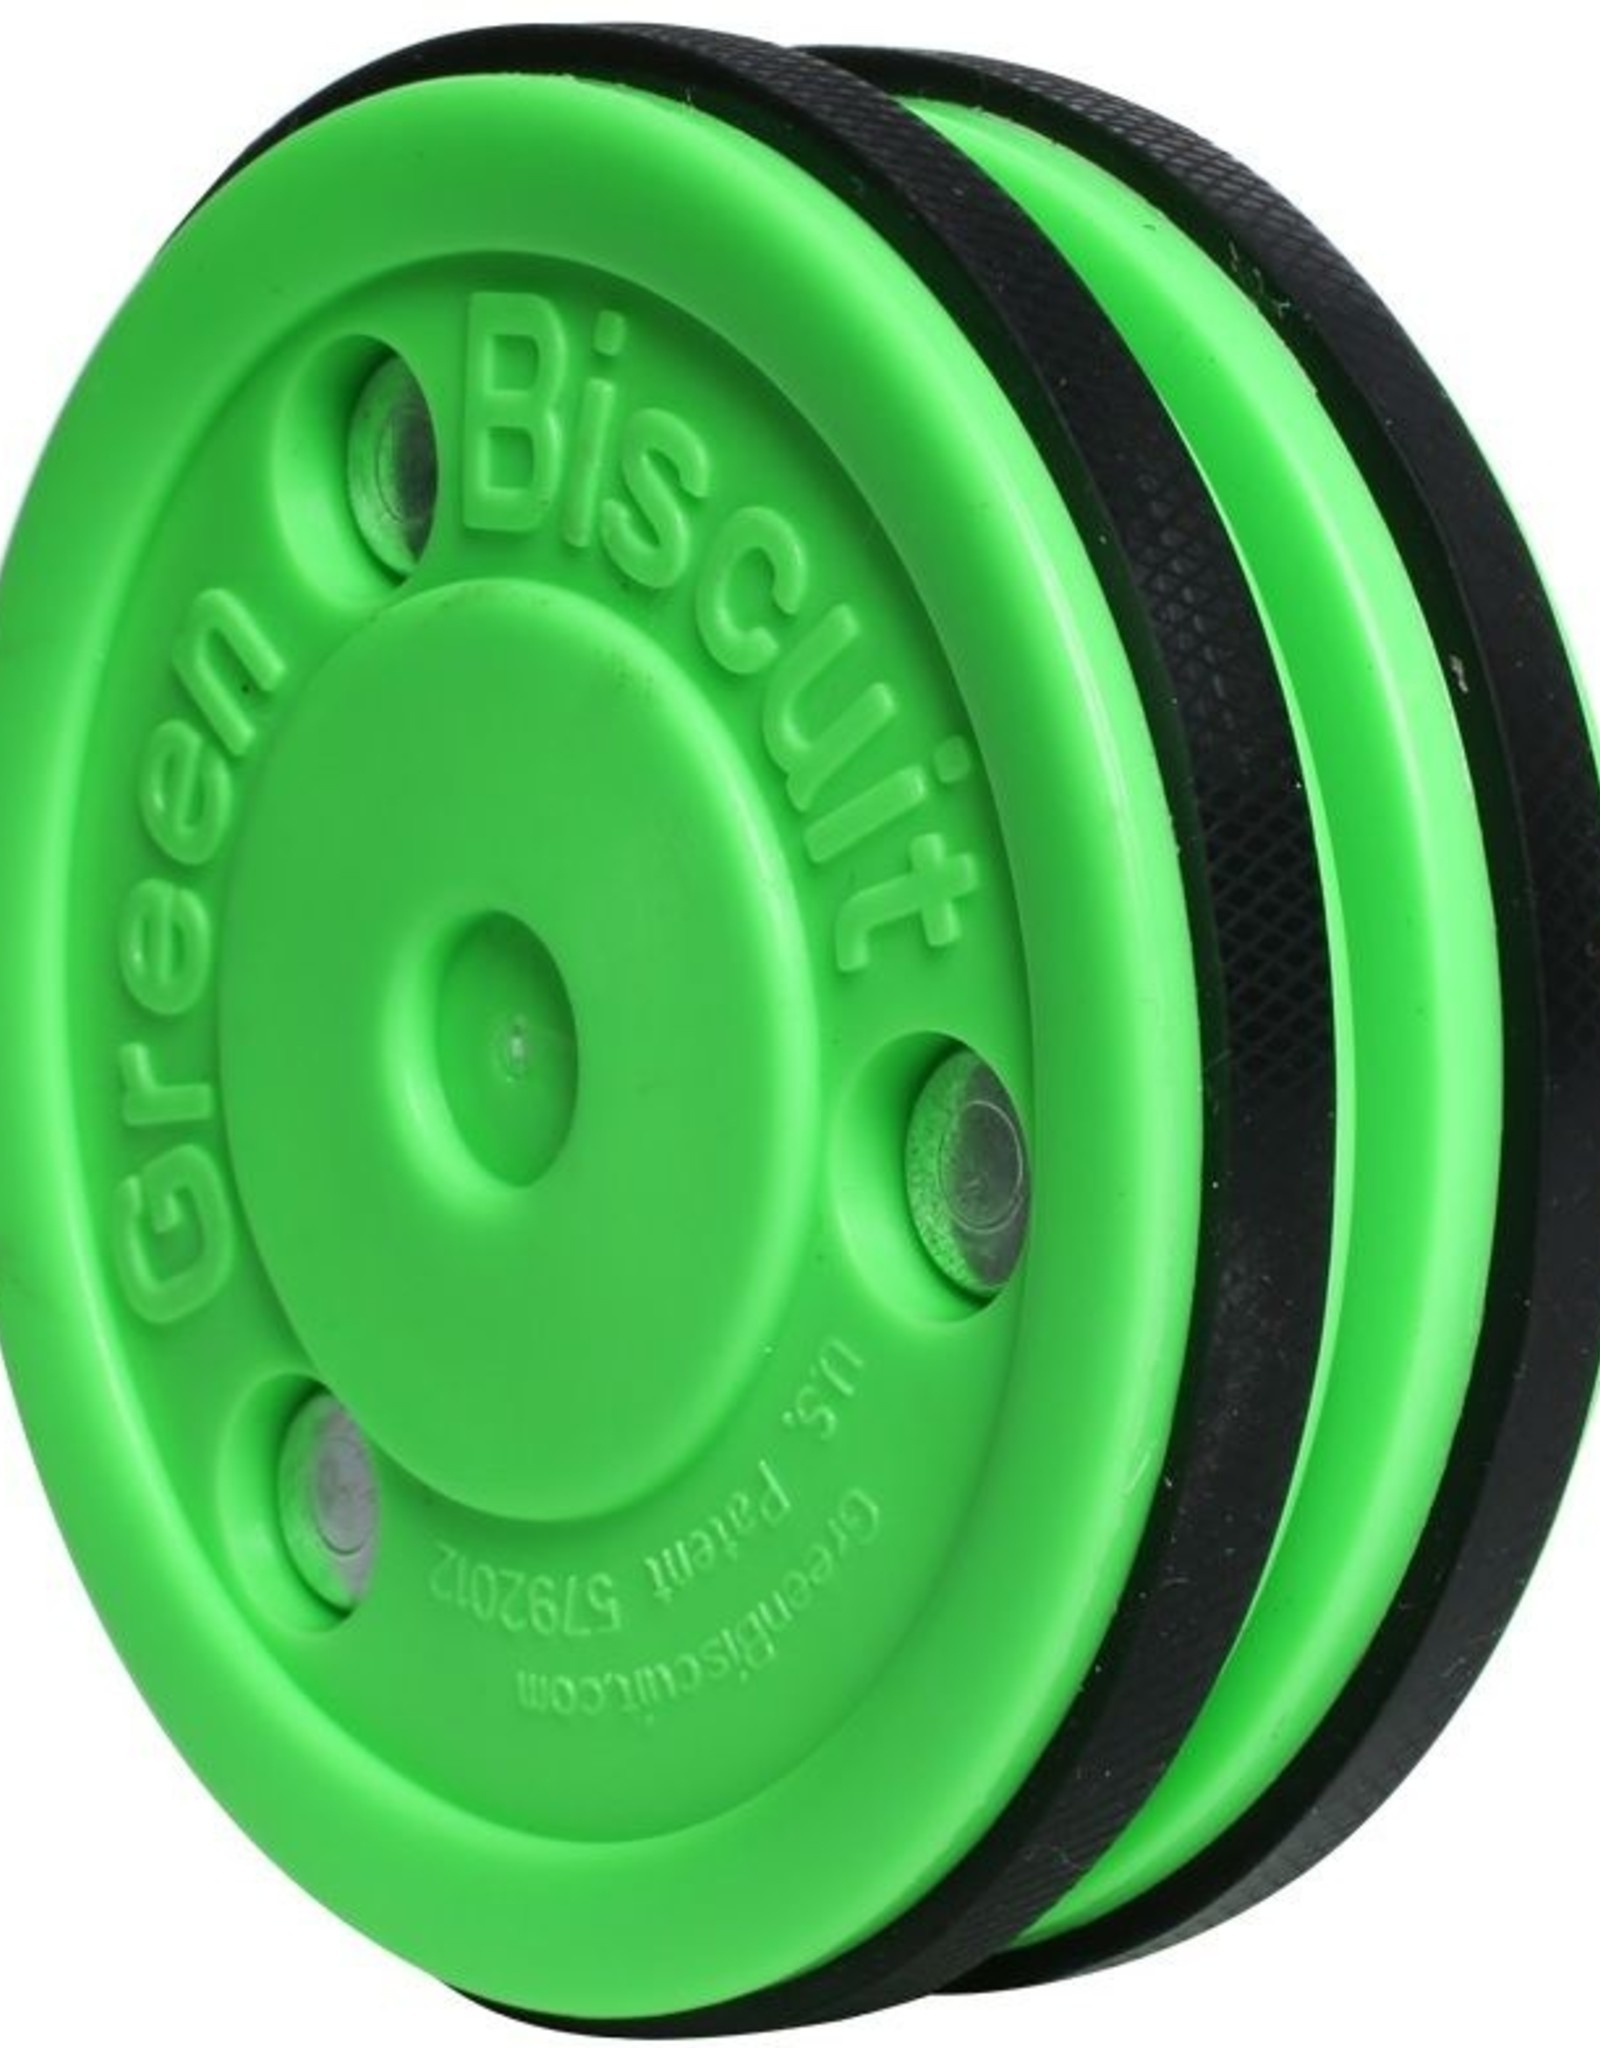 GREEN BISCUIT PRO SAUCER PASS